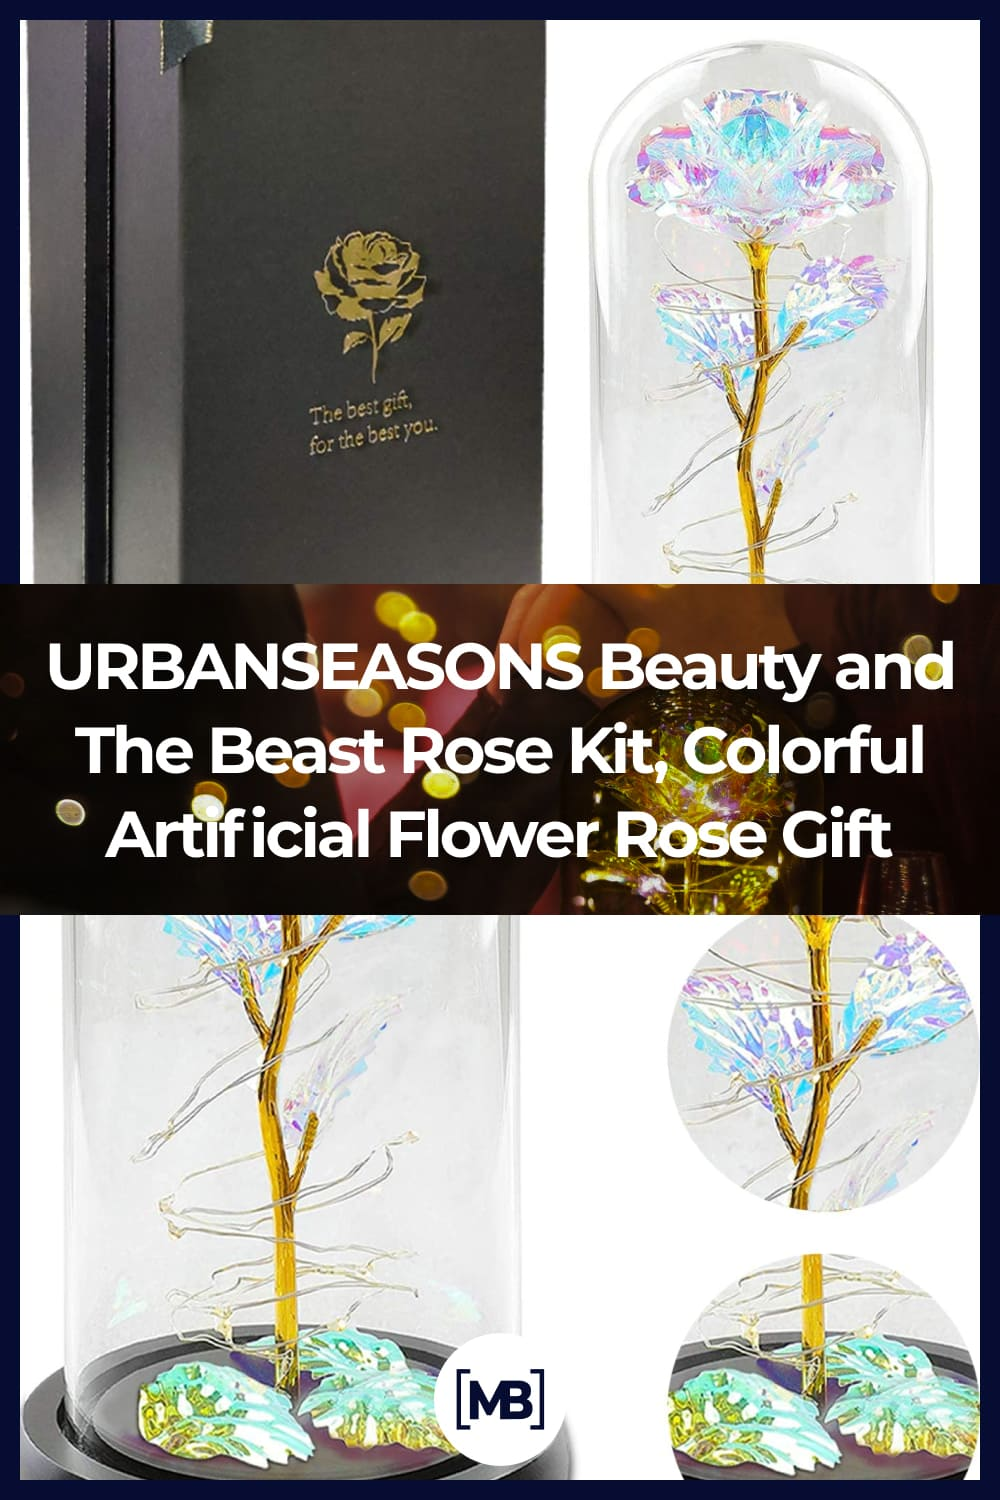 Rose represents love, this gold foil rose and not fading rose symbolizes your forever love.